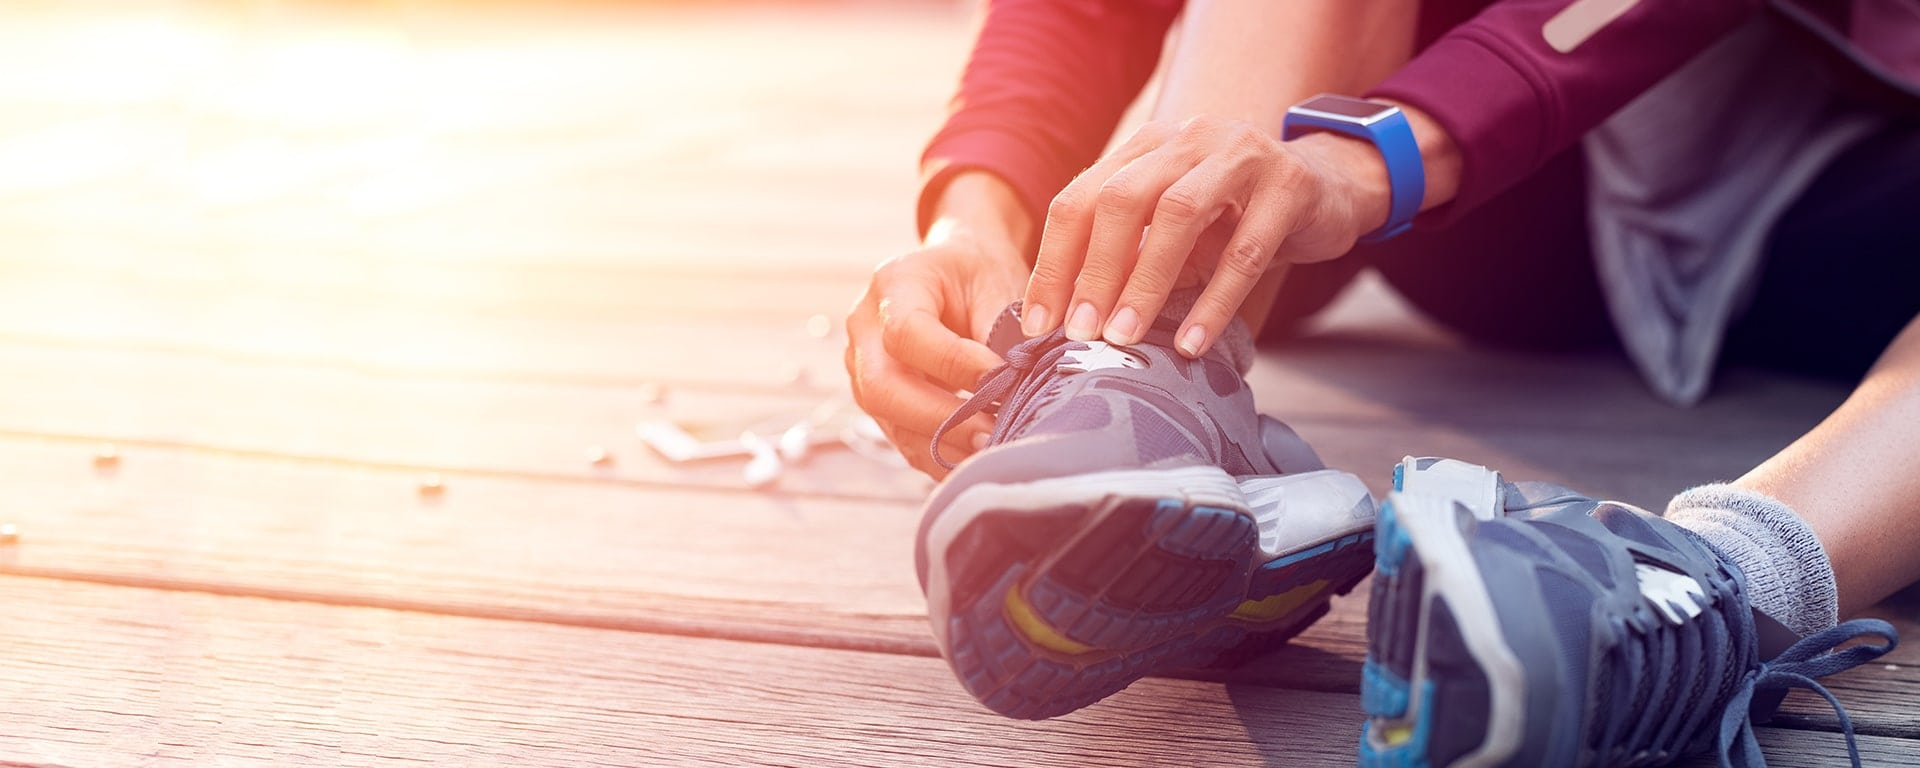 Process health - runner tying shoes